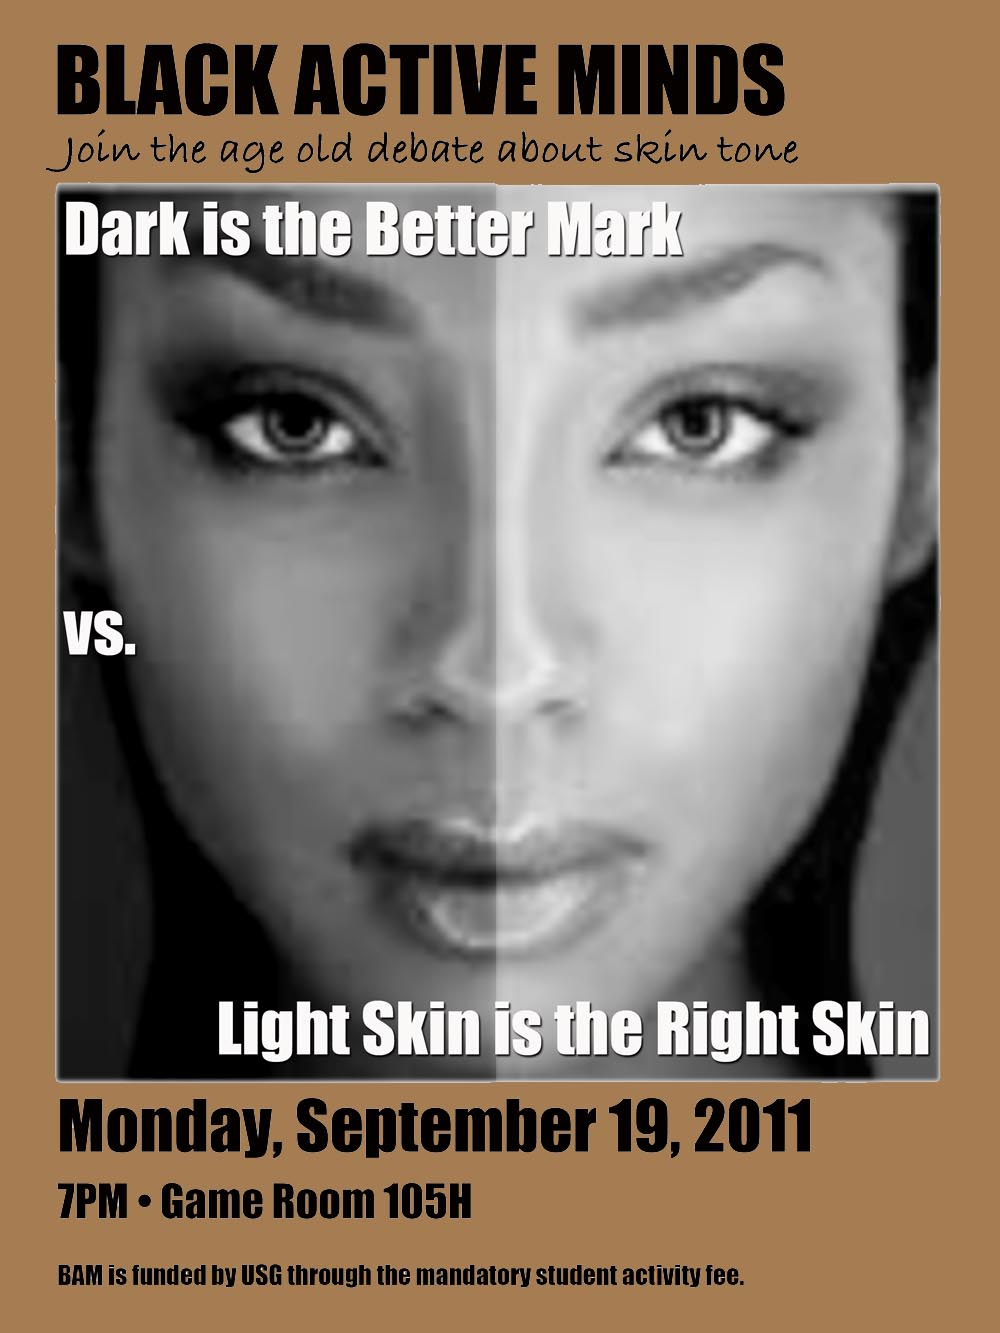 prejudice dark skin vs light skin A concept they call skin tone memory bias the study claims to varying skin tones ranging from light to dark bias racial prejudice.